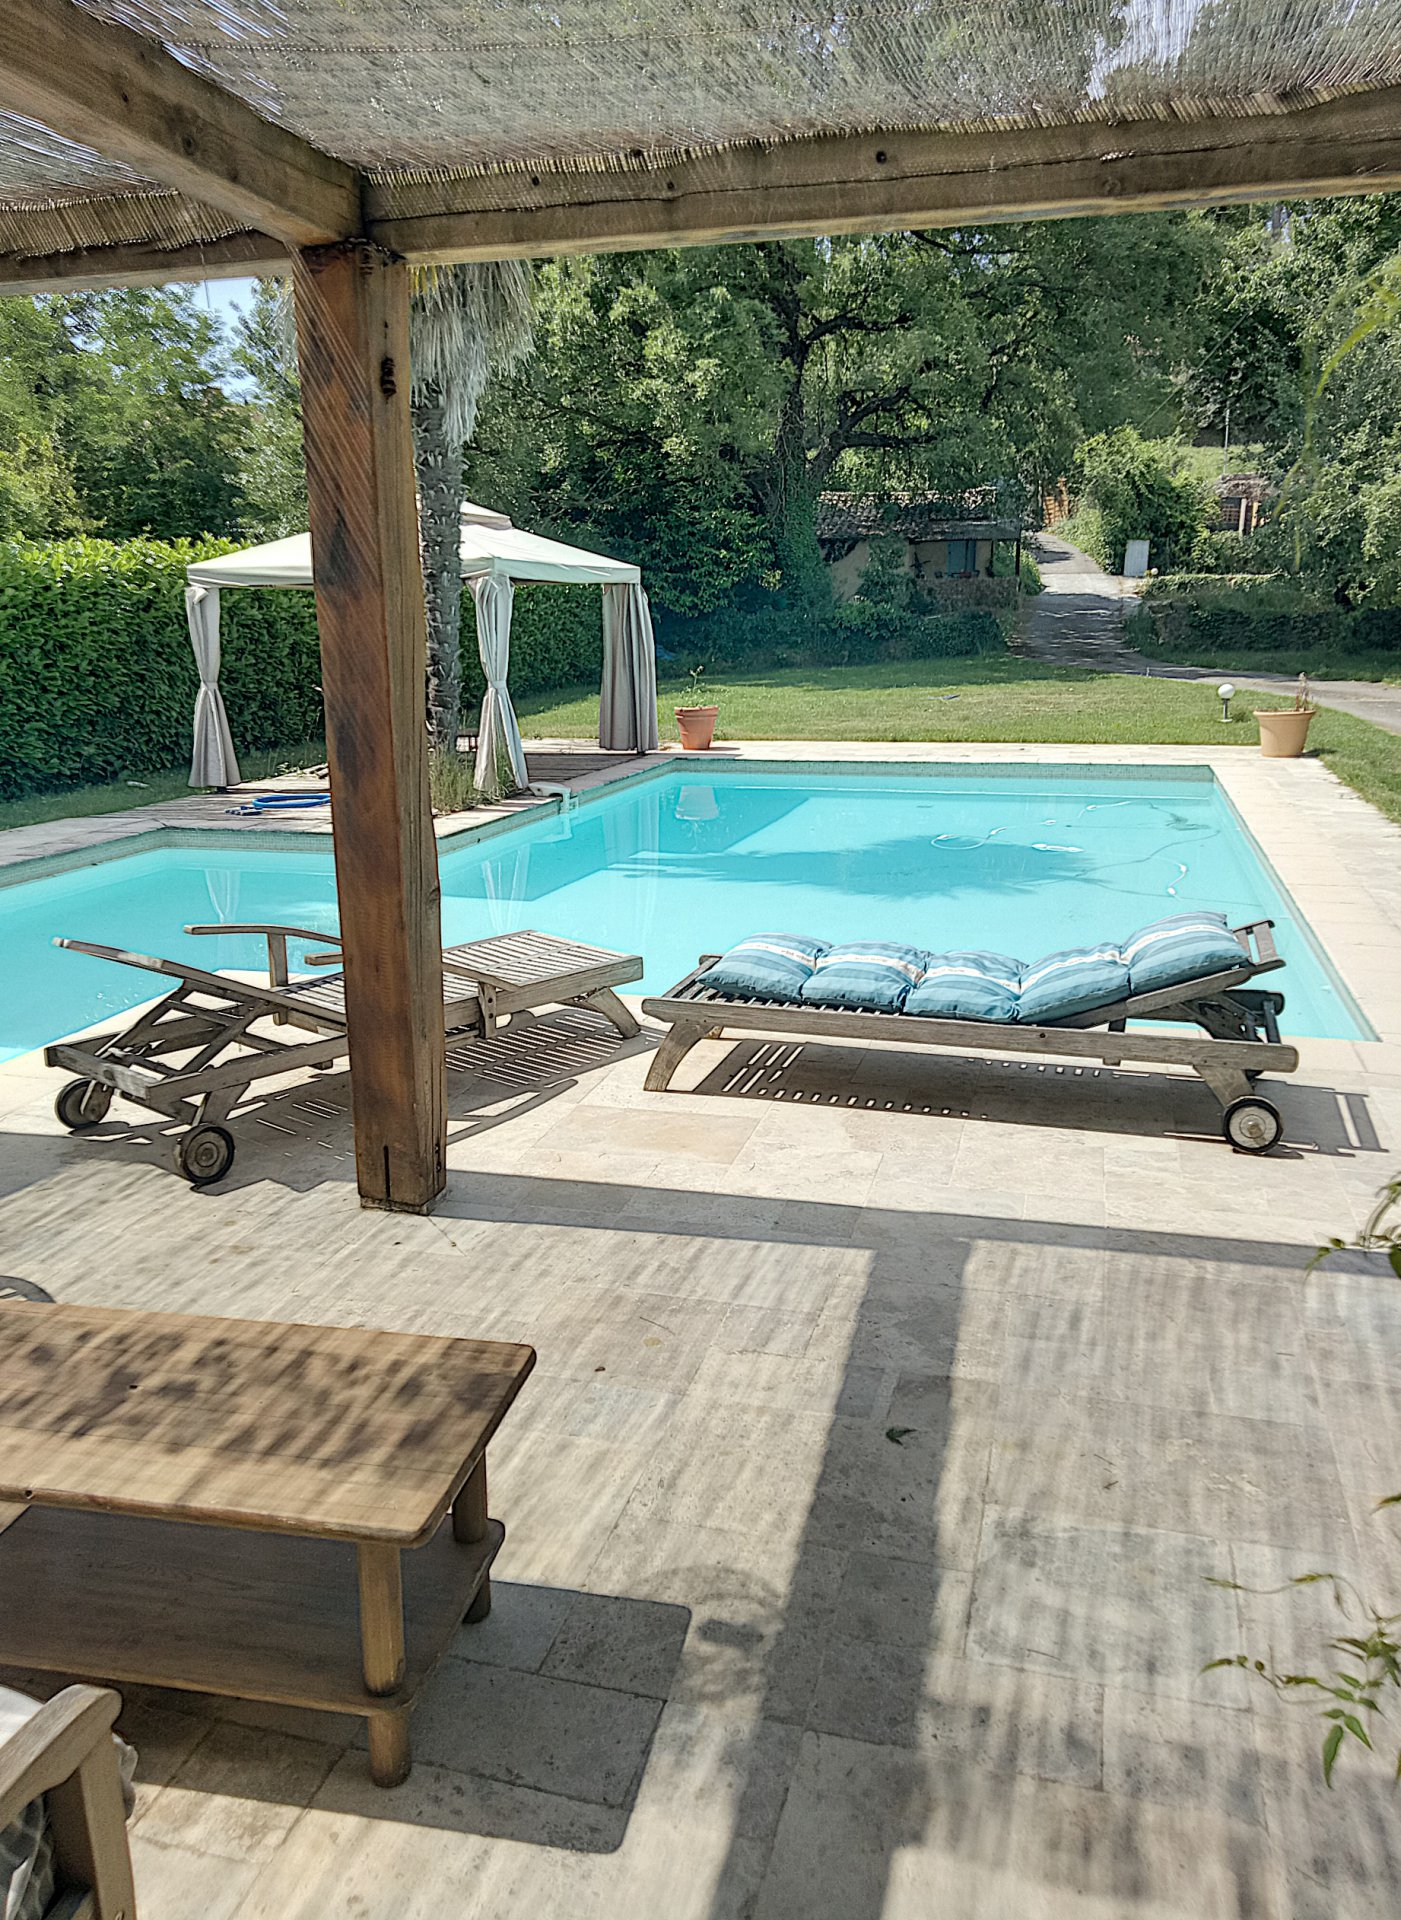 SAINT PAUL DE VENCE (06570) - MAISON 173M2 - 6 PIECES - PISCINE - DEPENDANCE